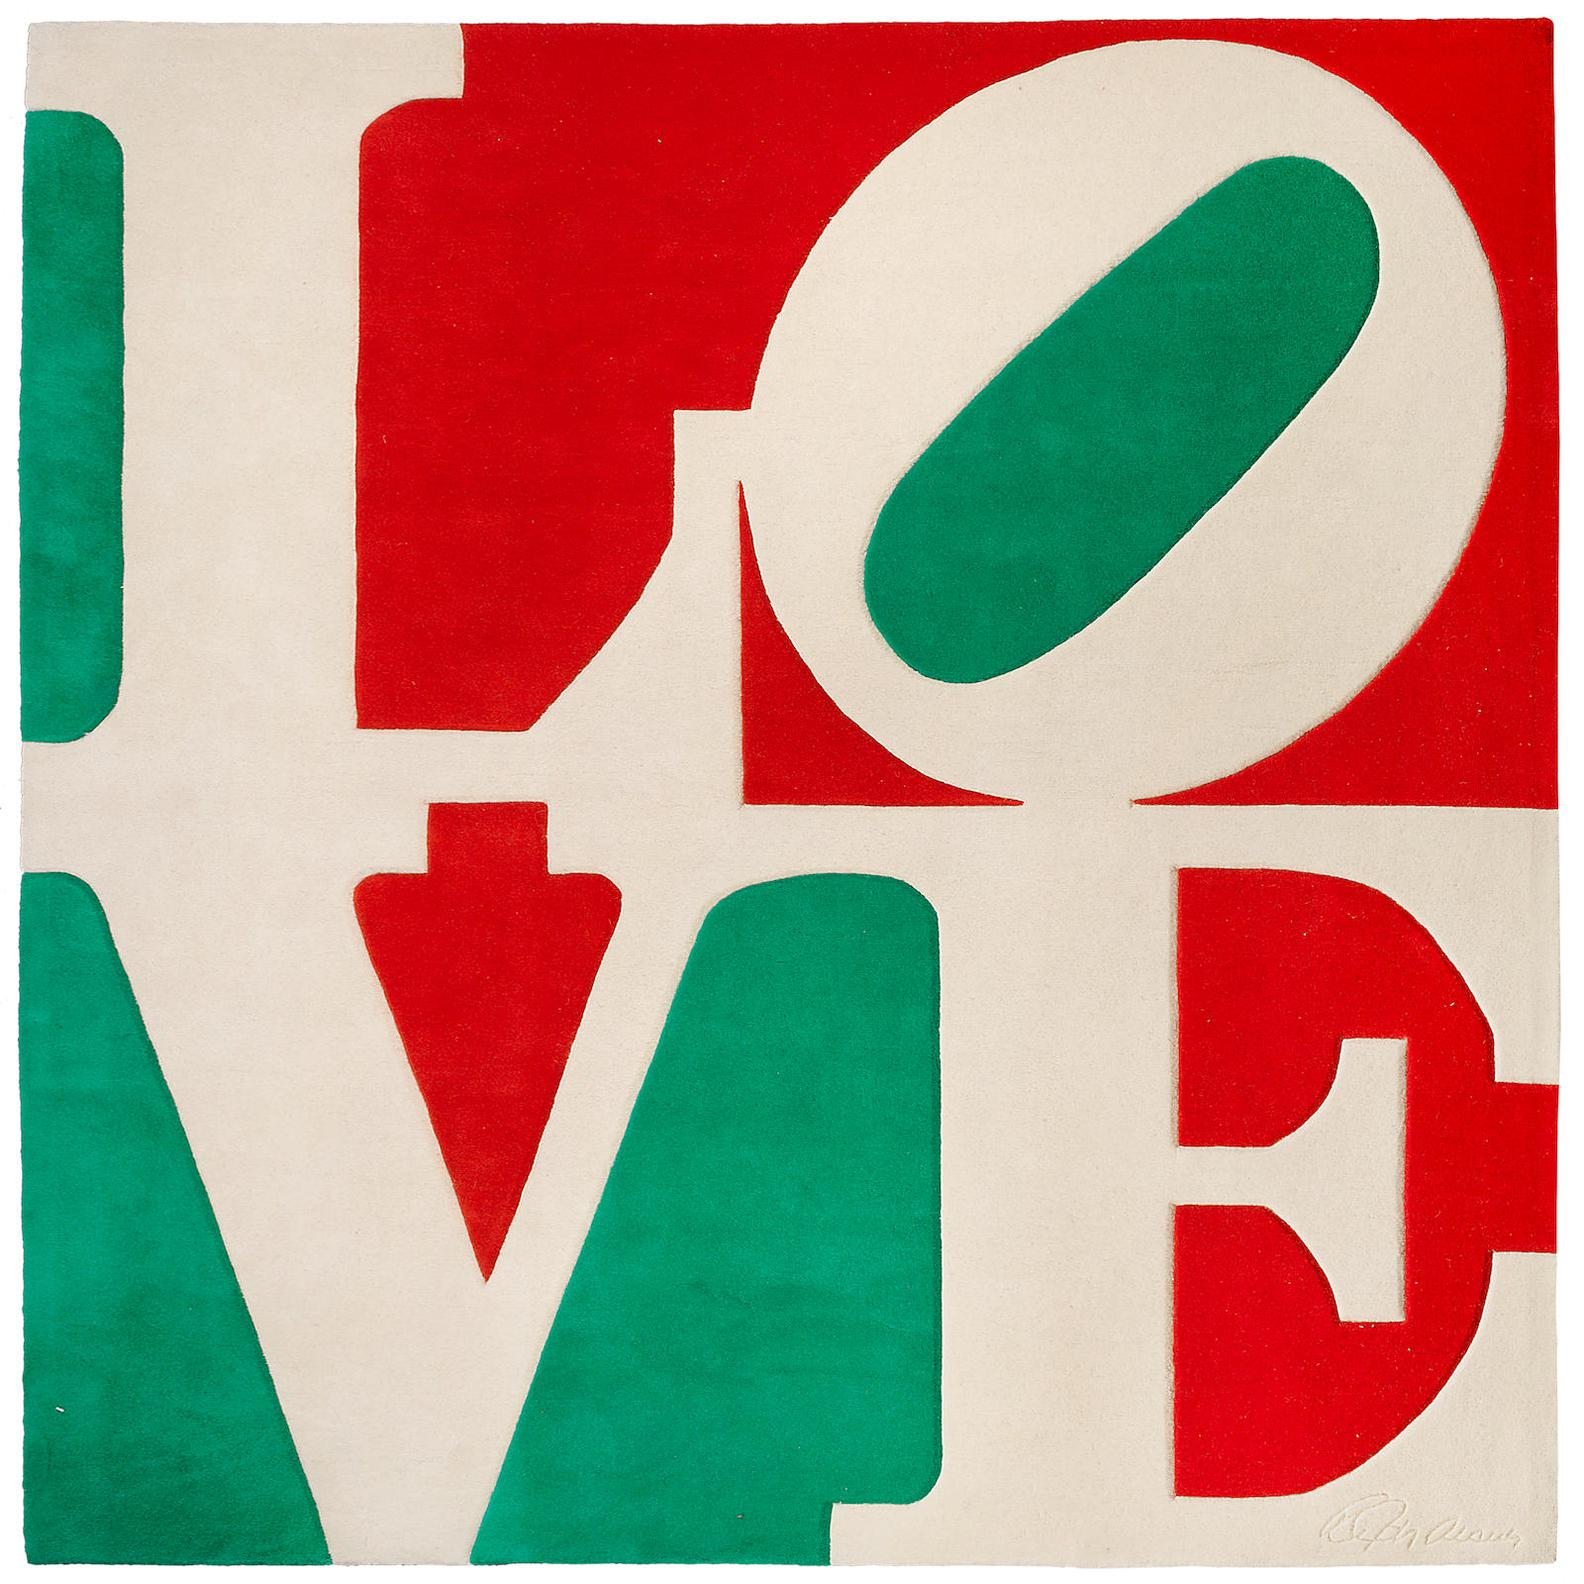 Robert Indiana-Italian Love-1995